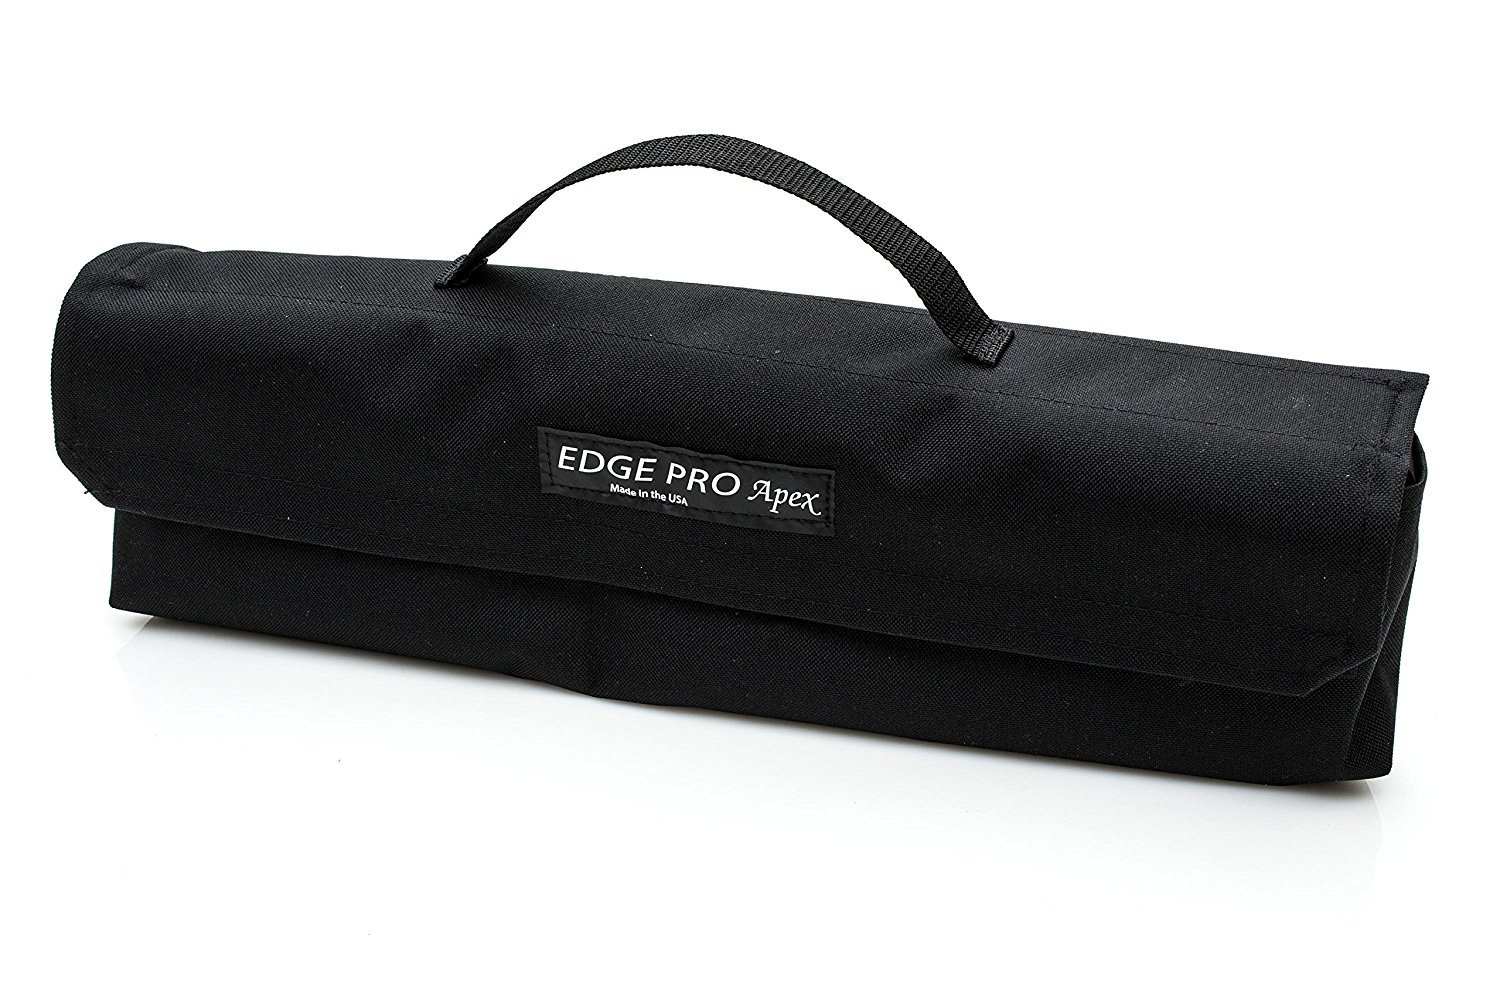 Edge Pro Apex 1 Knife Sharpener Kit